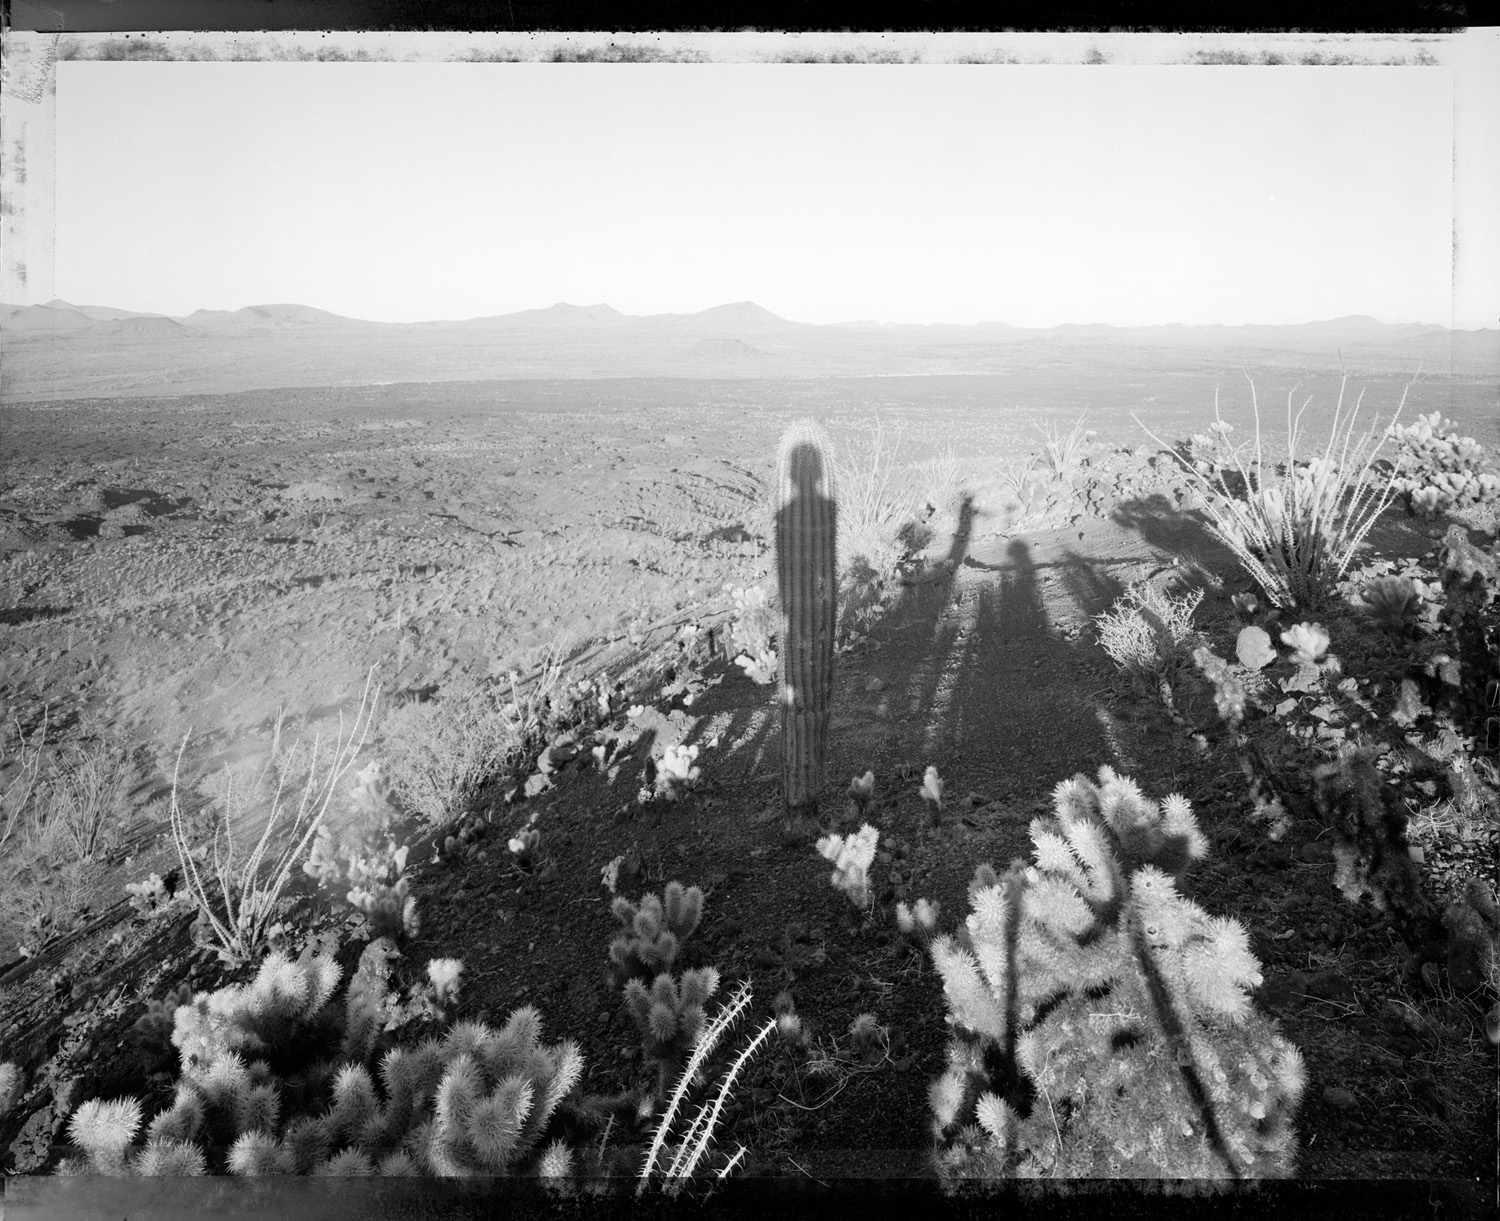 Self portrait with saguaro about my same age, Sonora Mexico